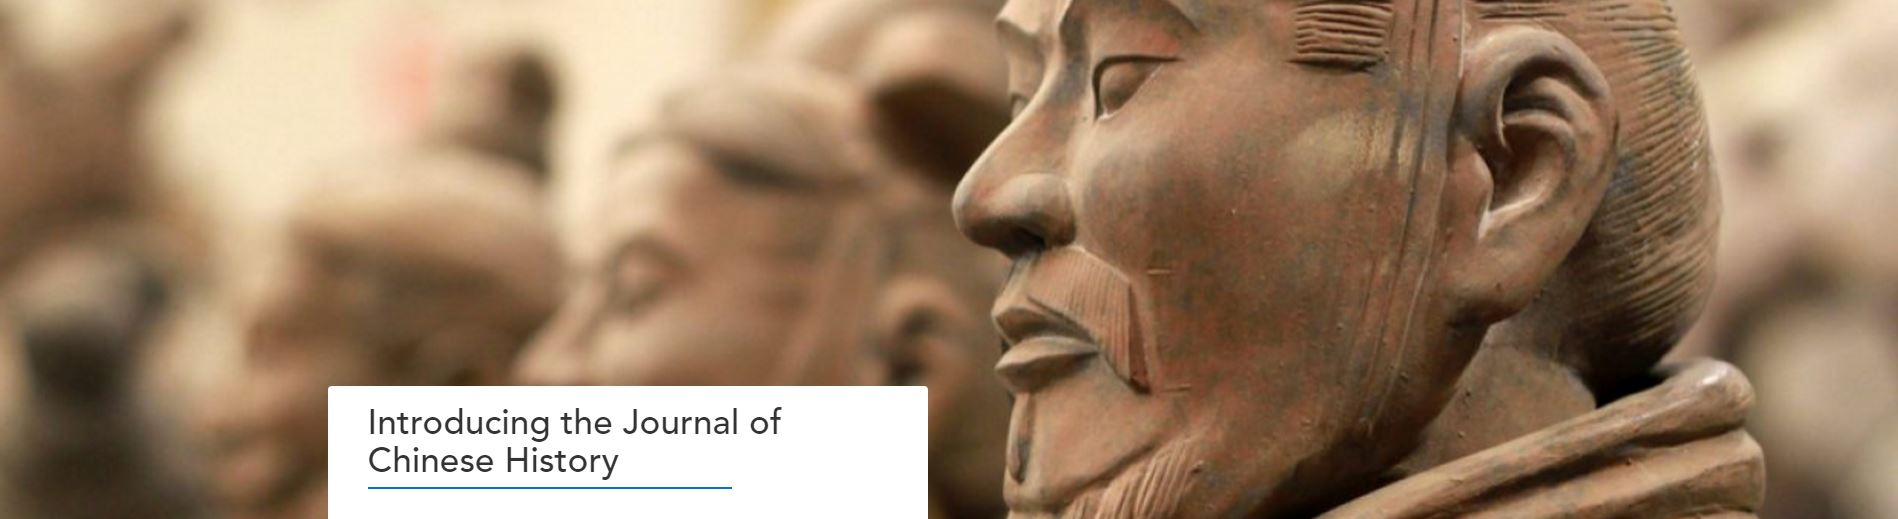 Link to Introducing the Journal of Chinese History blog post